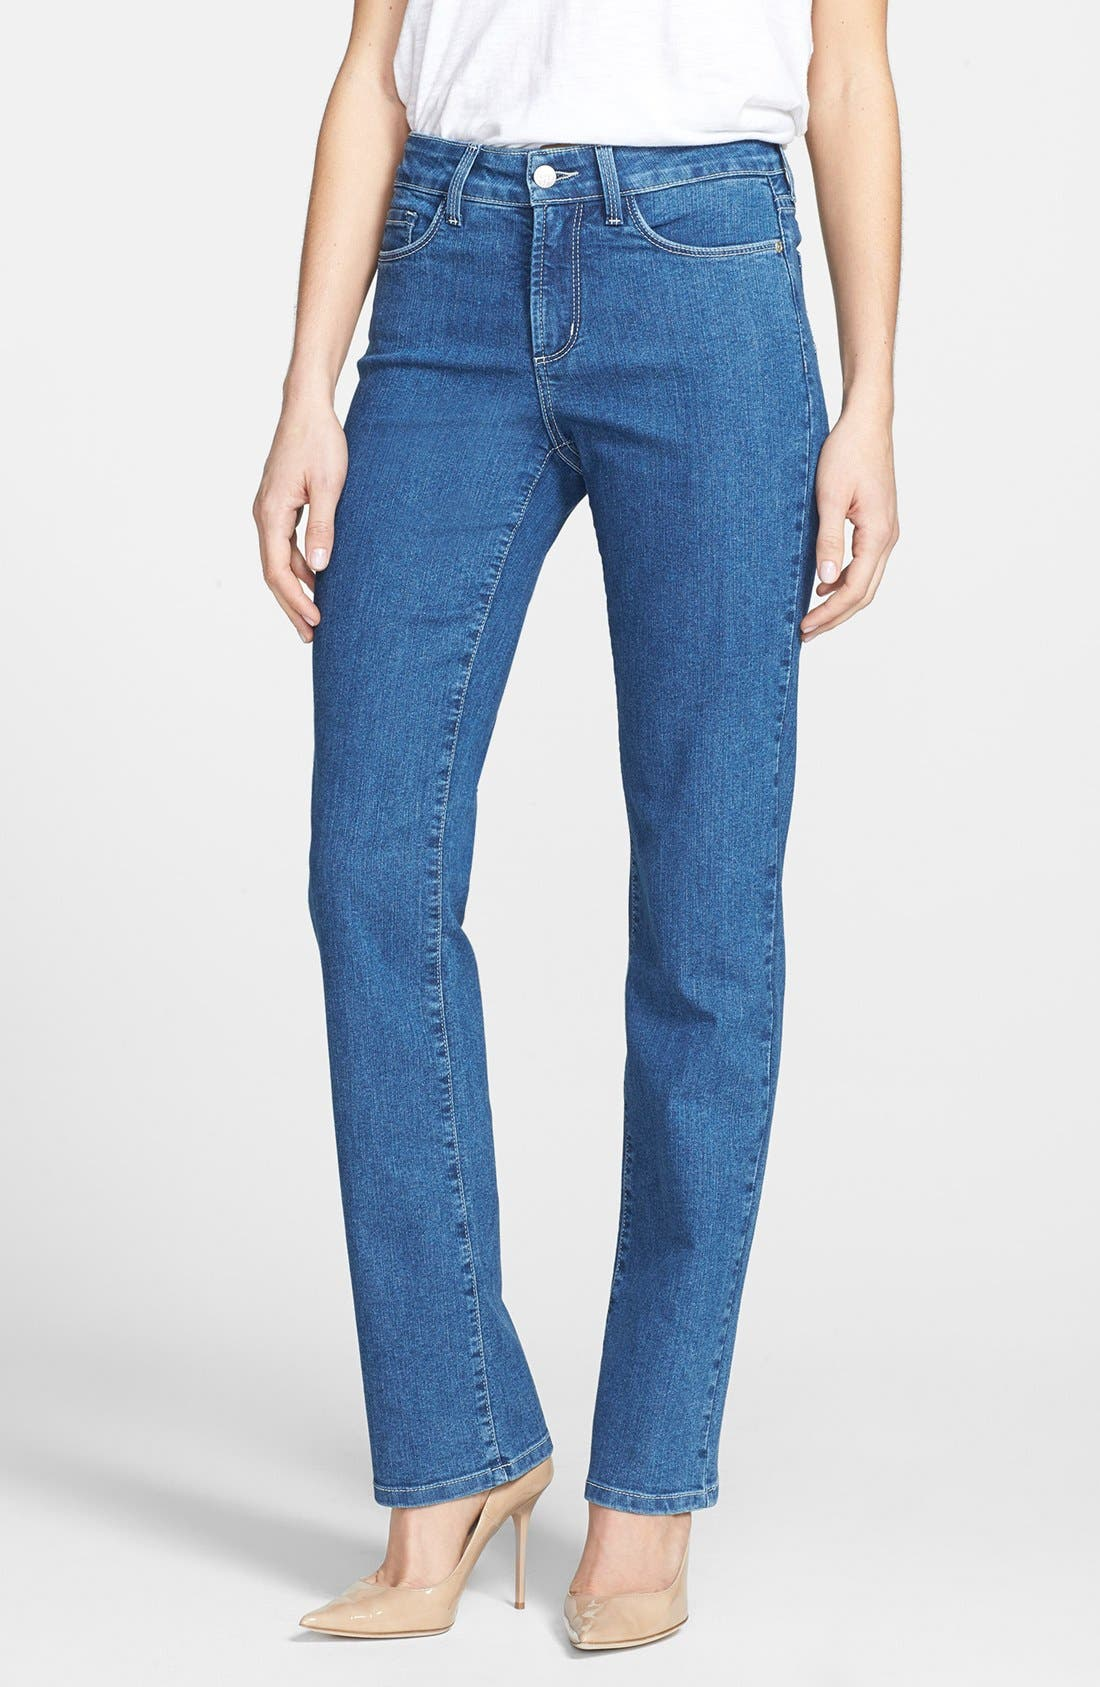 Alternate Image 1 Selected - NYDJ 'Marilyn' Stretch Straight Leg Jeans (Maryland)